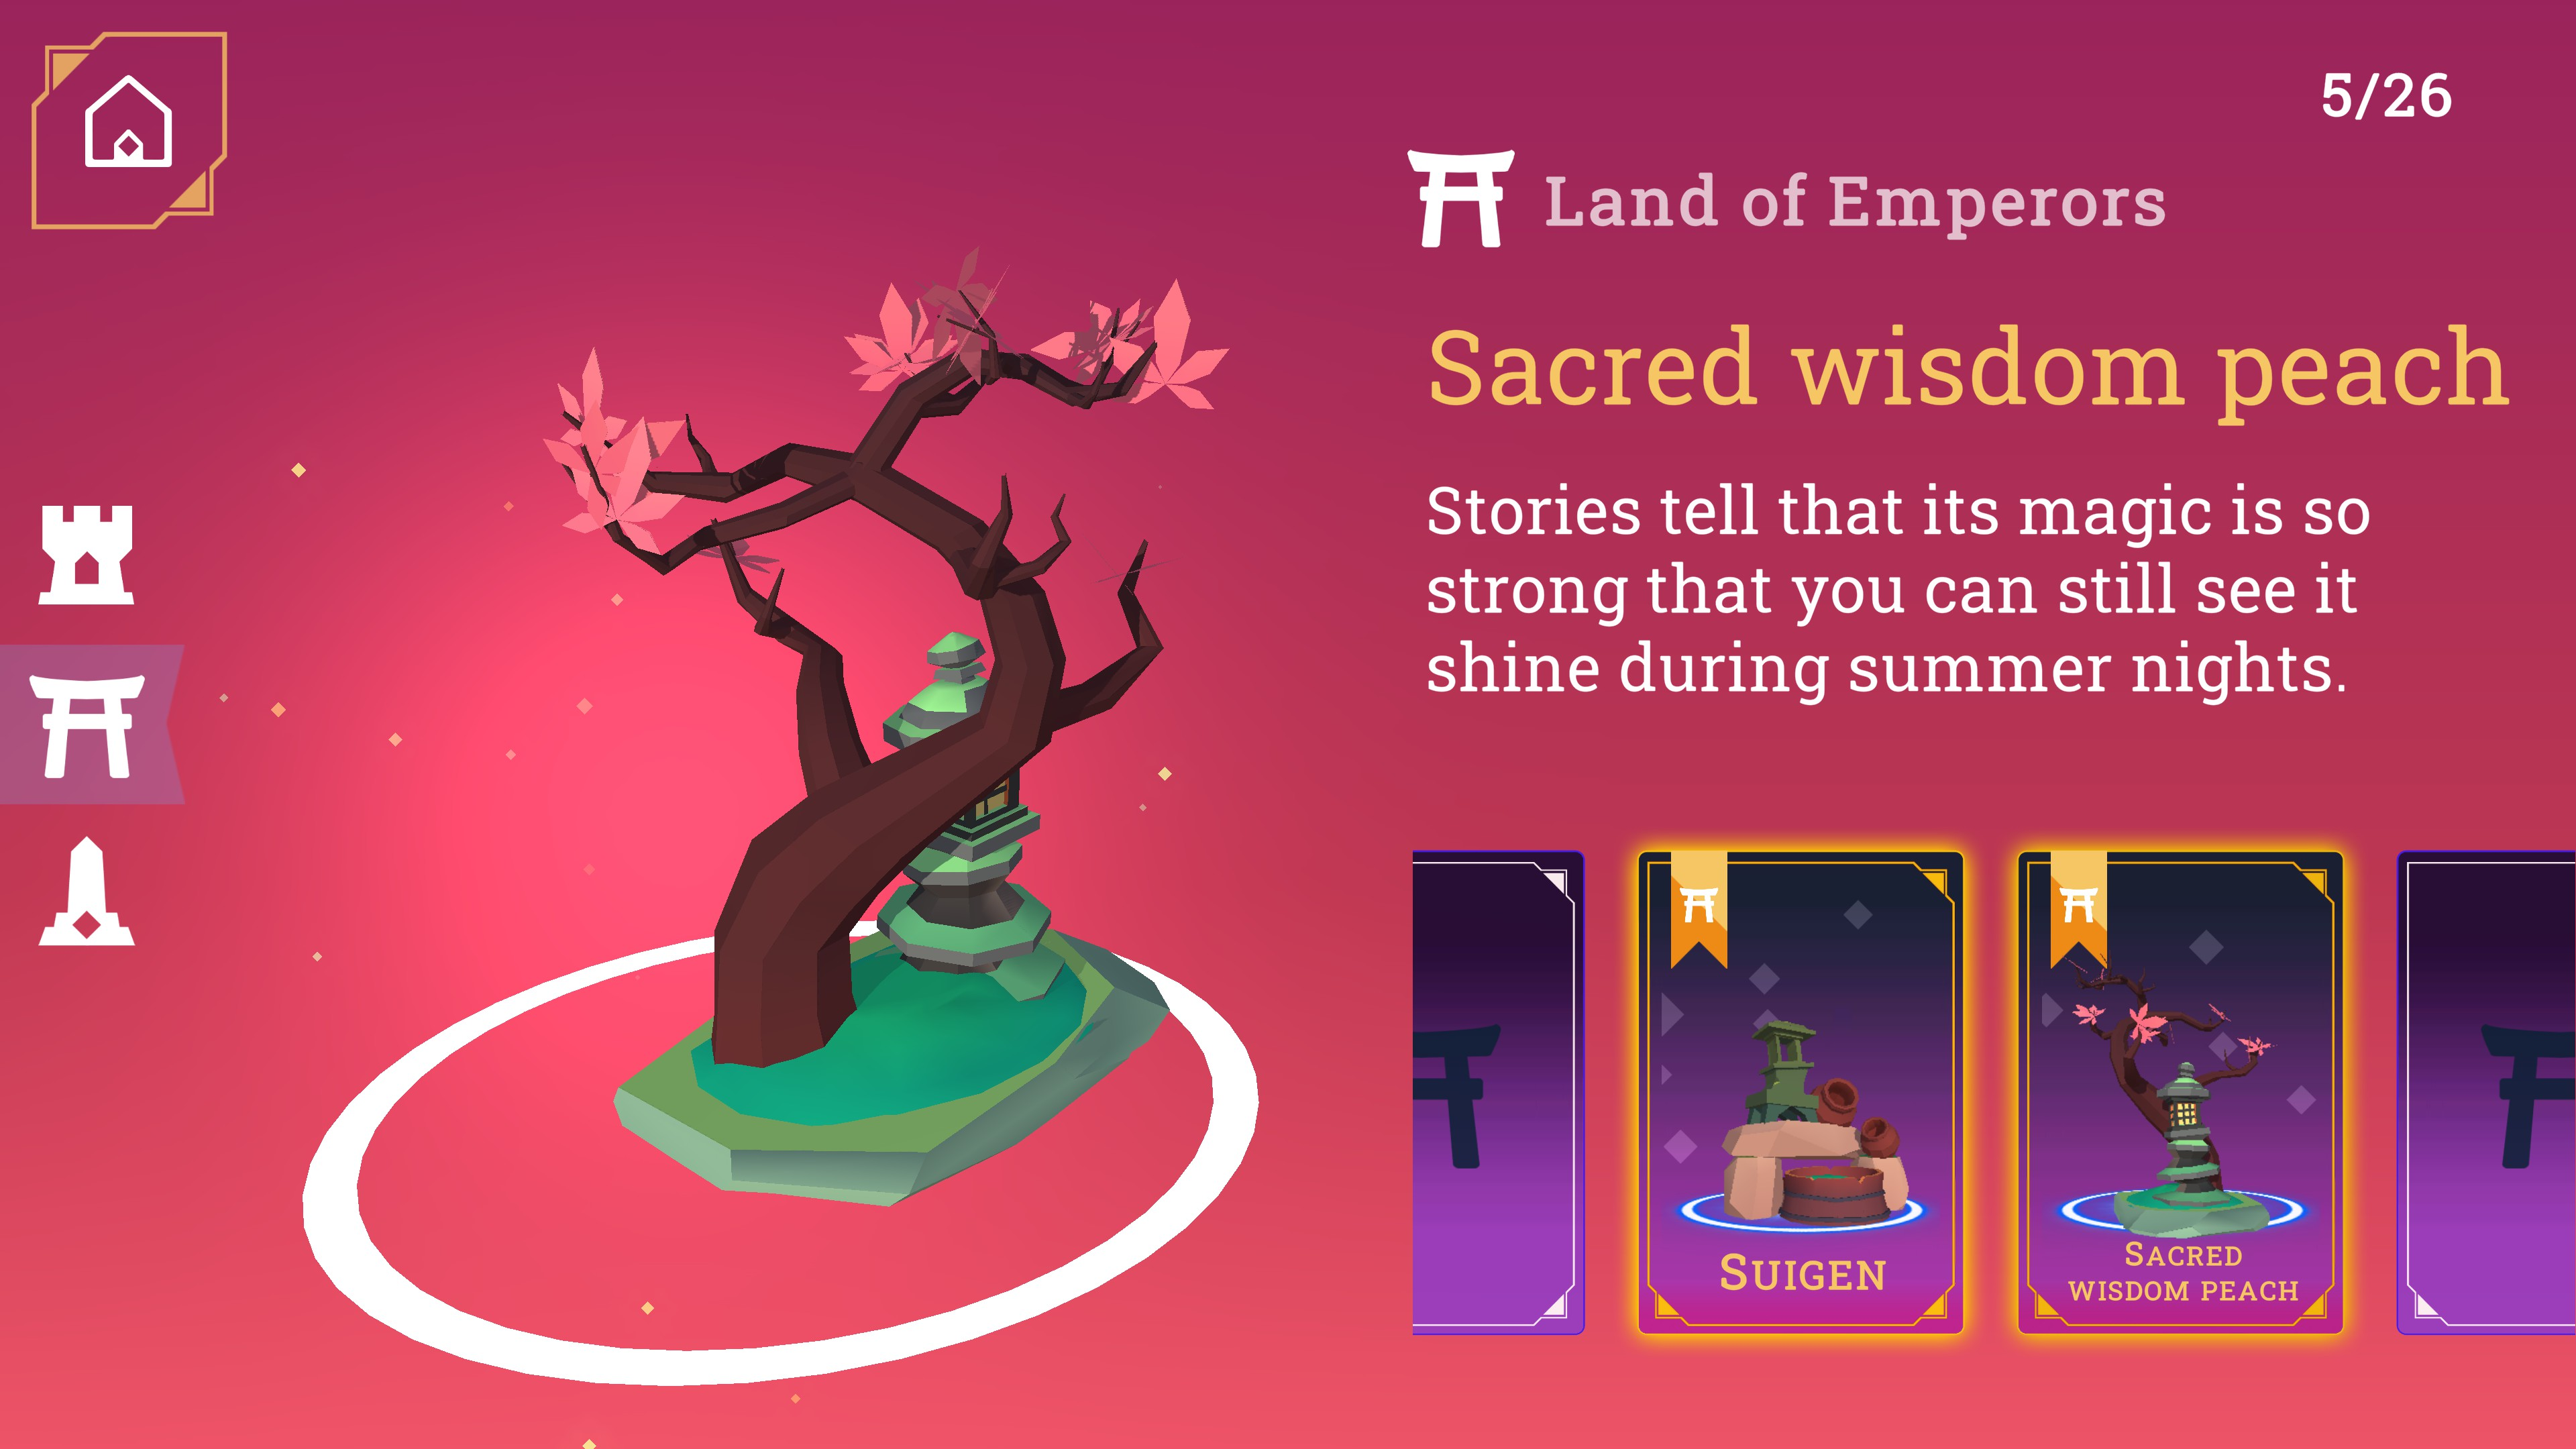 Hidden Lands. Collection view showing the sacred wisdom peach from the land of emperors